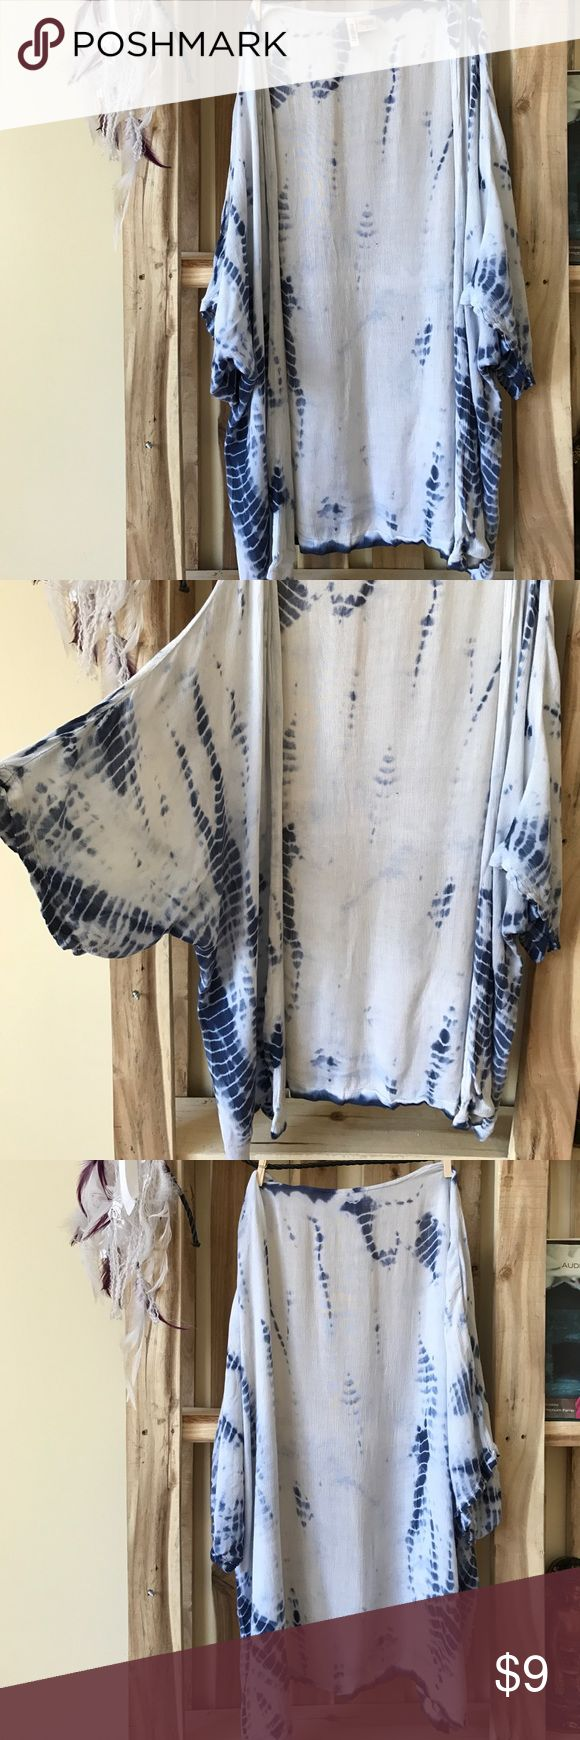 Blue tie dye shaw In perfect condition Passport Tops Blouses